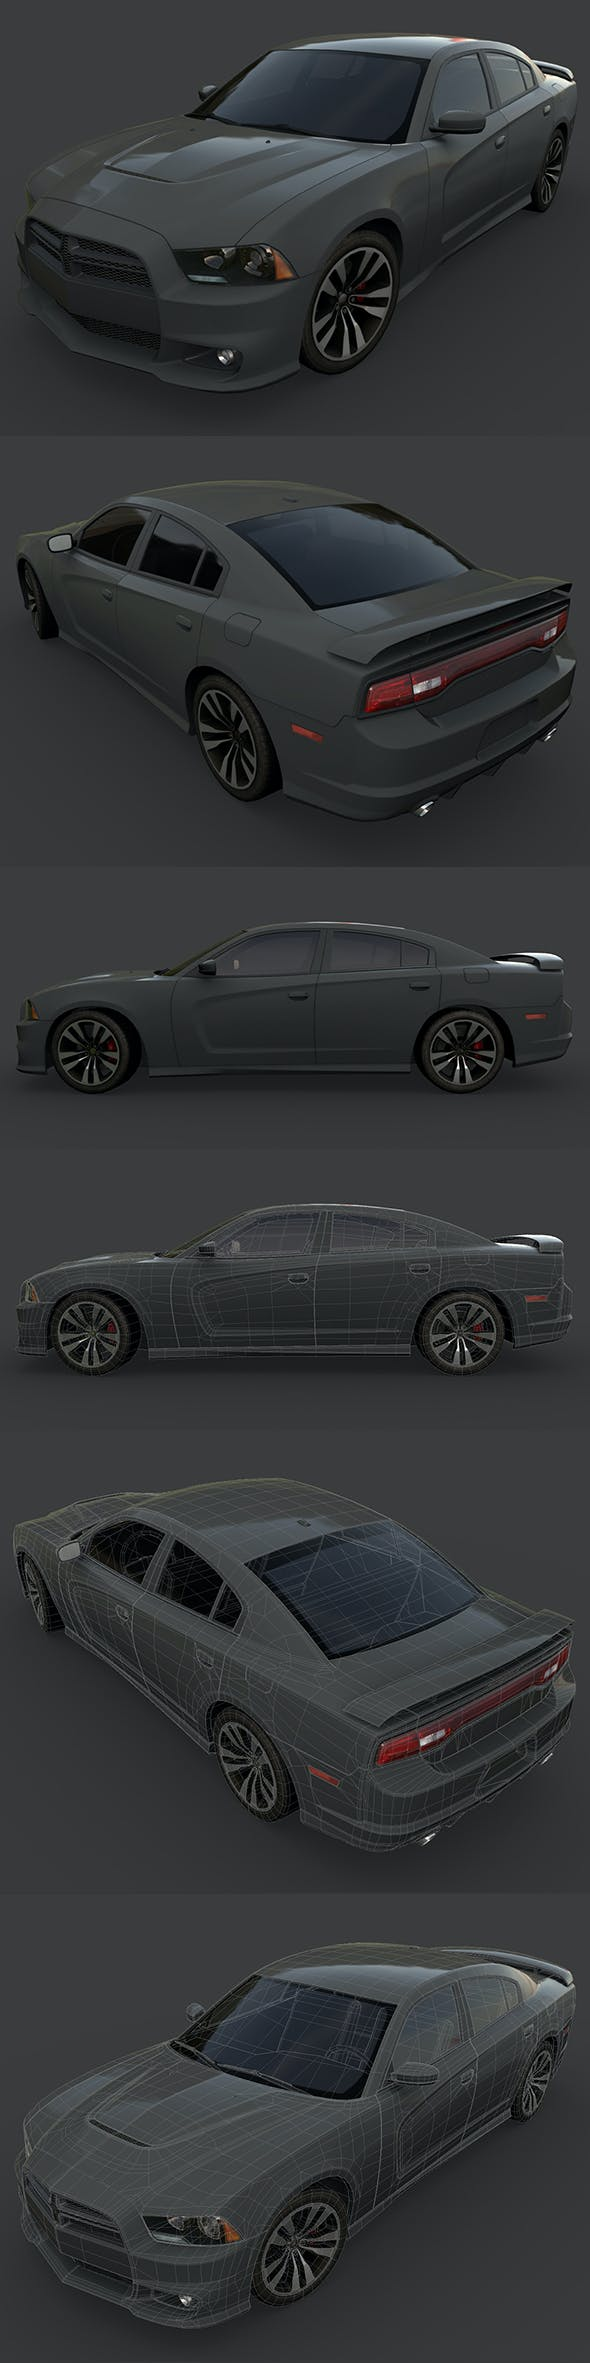 Dodge Charger 2012 - 3DOcean Item for Sale